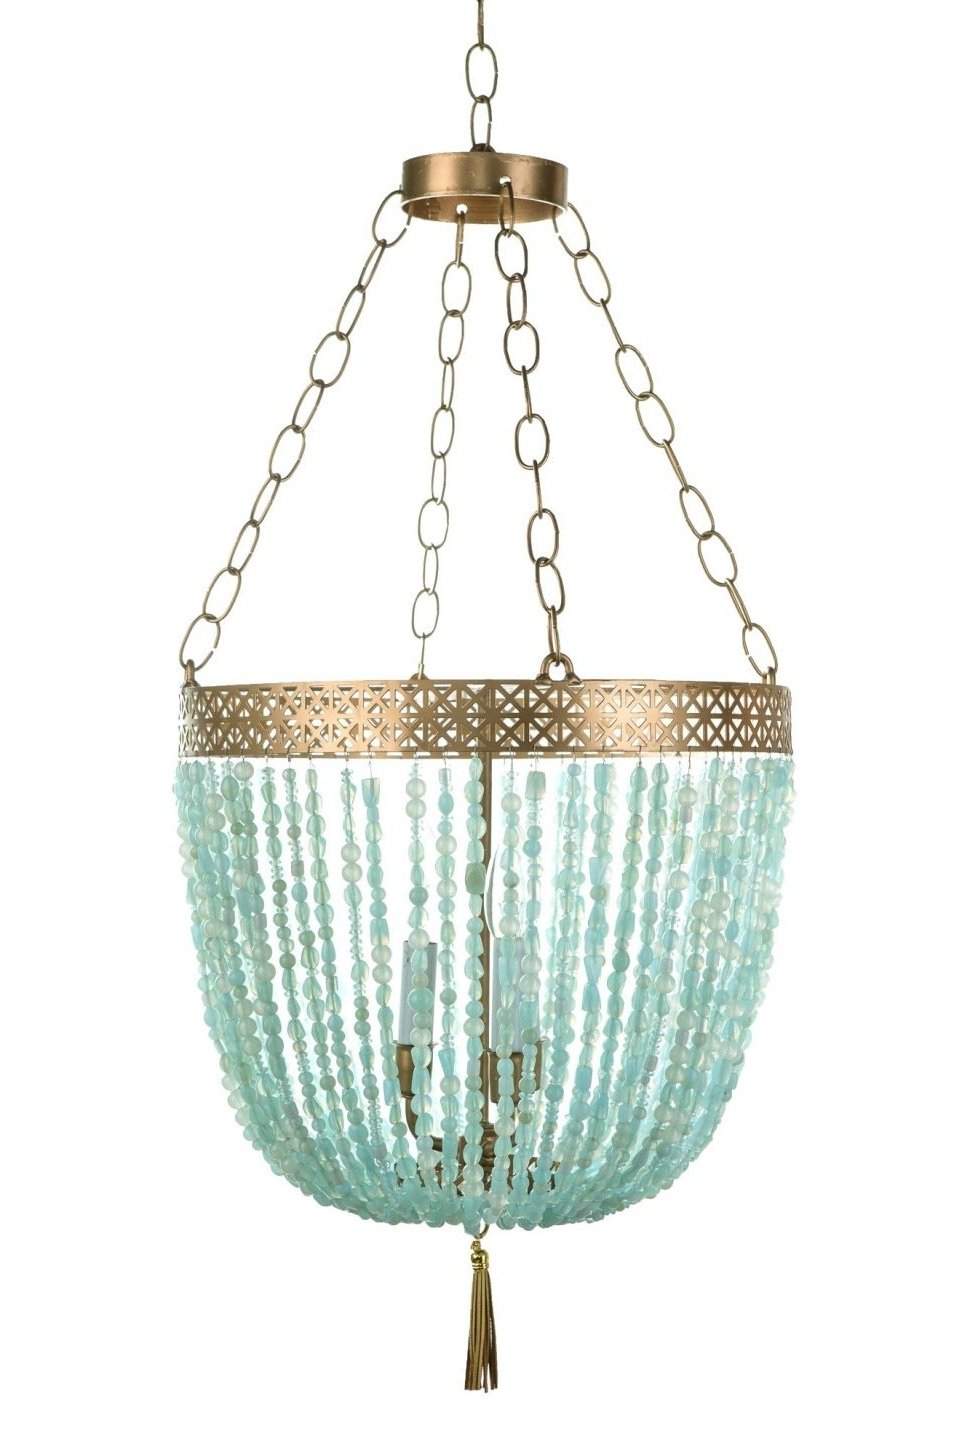 Chandeliers Design : Magnificent Turquoise Blue Chandelier Light Intended For Current Turquoise Blue Beaded Chandeliers (View 10 of 15)